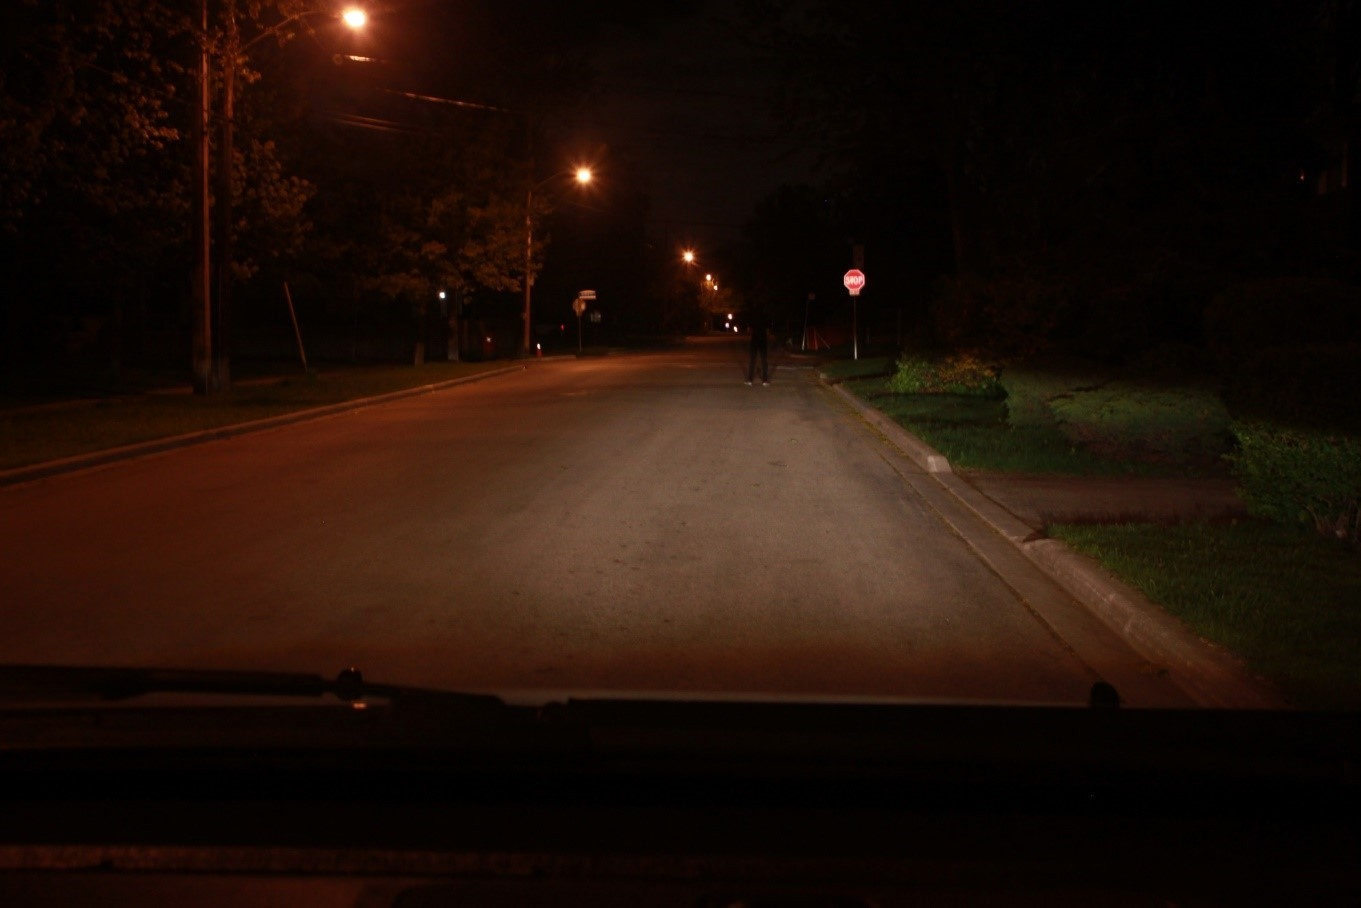 Streetlight working - 3 seconds before collision